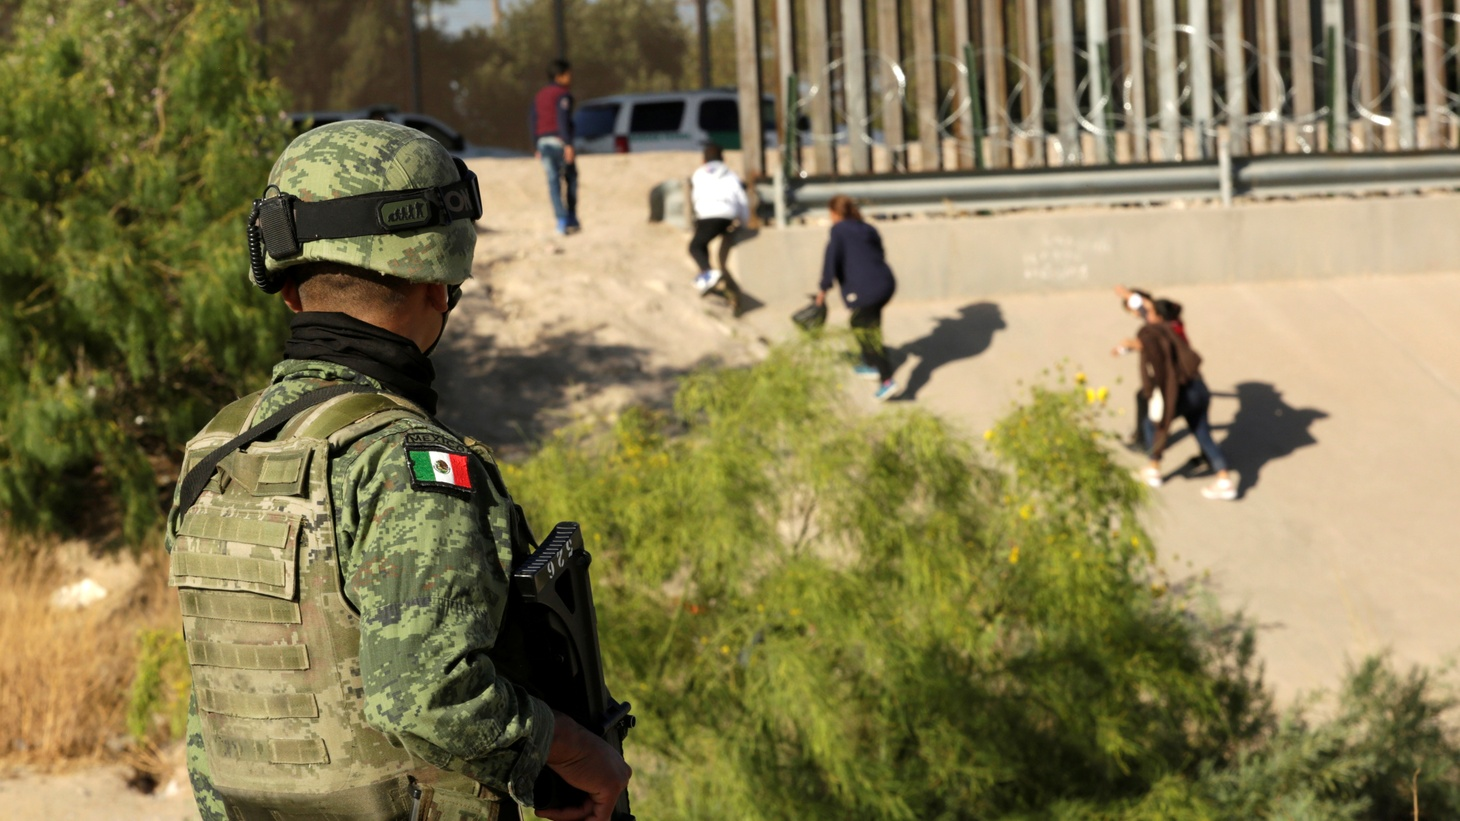 A member of the National Guard looks at migrants that crossed illegally into El Paso, Texas, U.S., from Ciudad Juarez, in Ciudad Juarez, Mexico June 19, 2019.